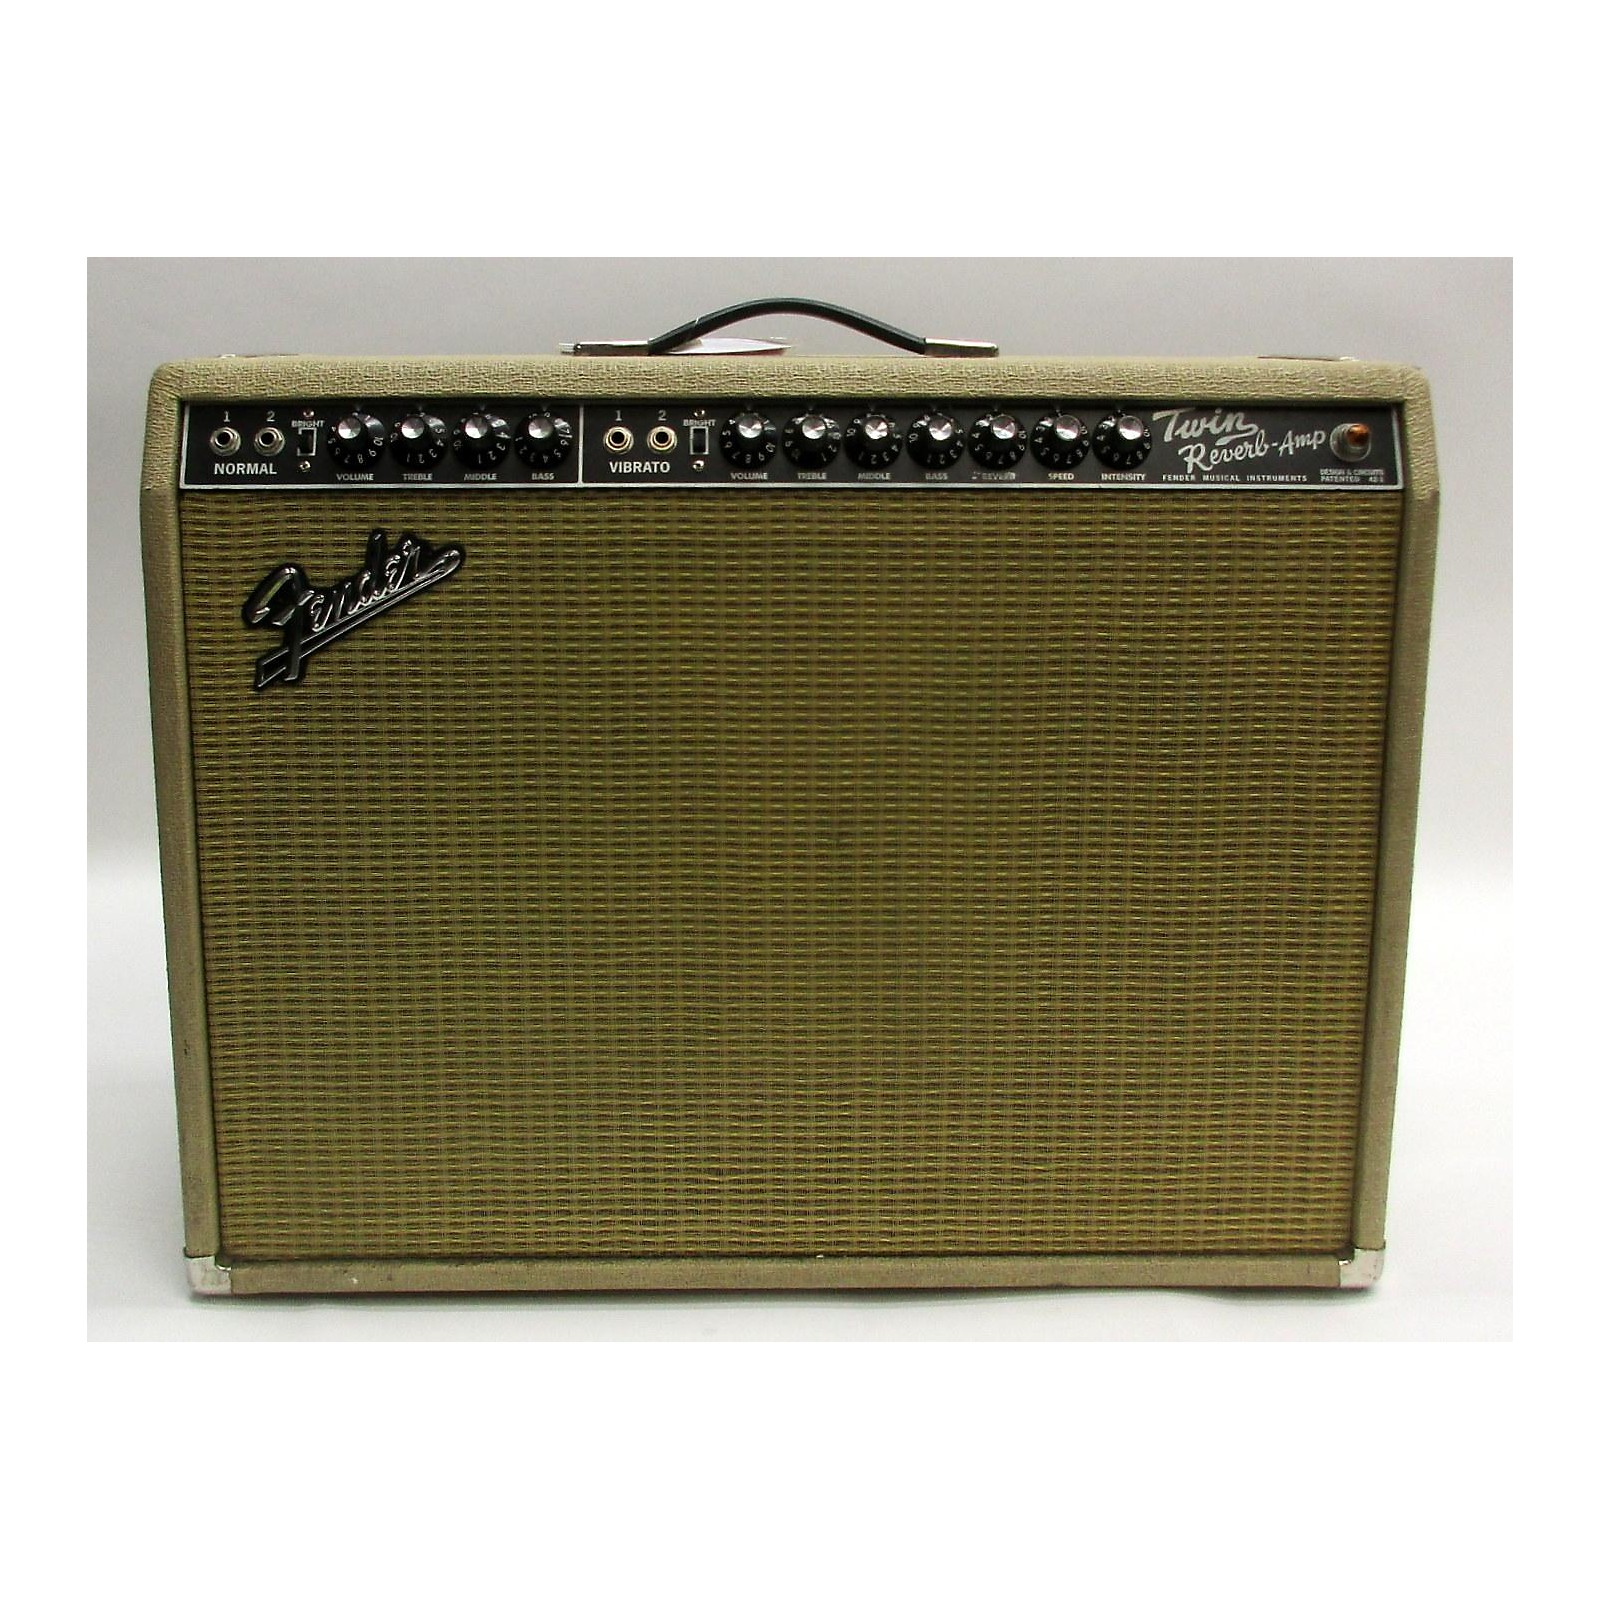 Fender 1965 Reissue Twin Reverb 85W 2x12 LIMITED EDITION BLONDE TOLEX Tube Guitar Combo Amp